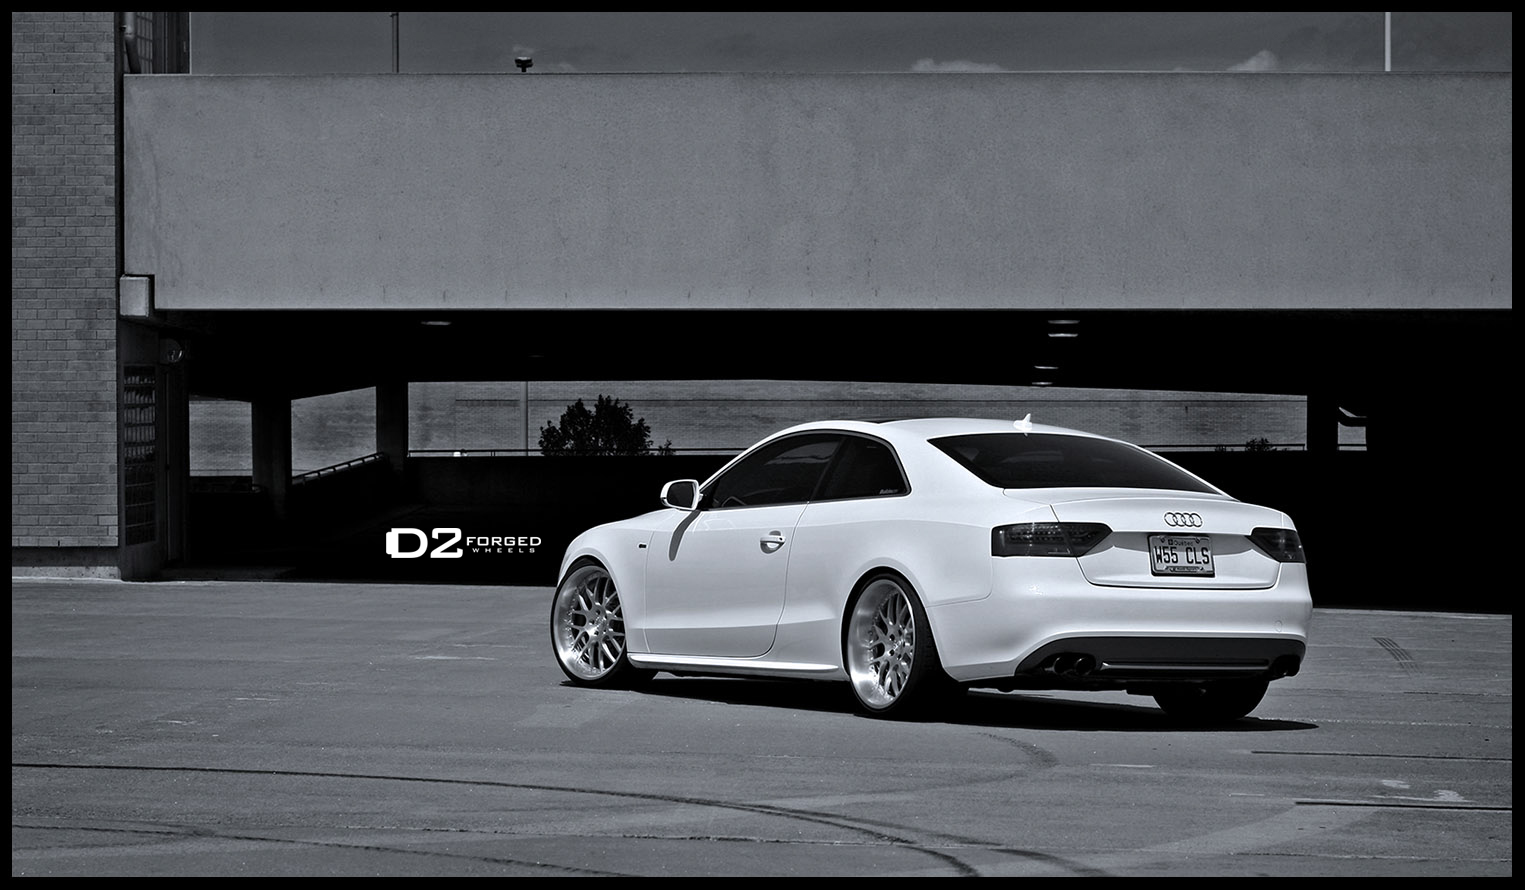 2012 audi a5 s line d2forged vs1 wheels 05 audi tuning mag. Black Bedroom Furniture Sets. Home Design Ideas